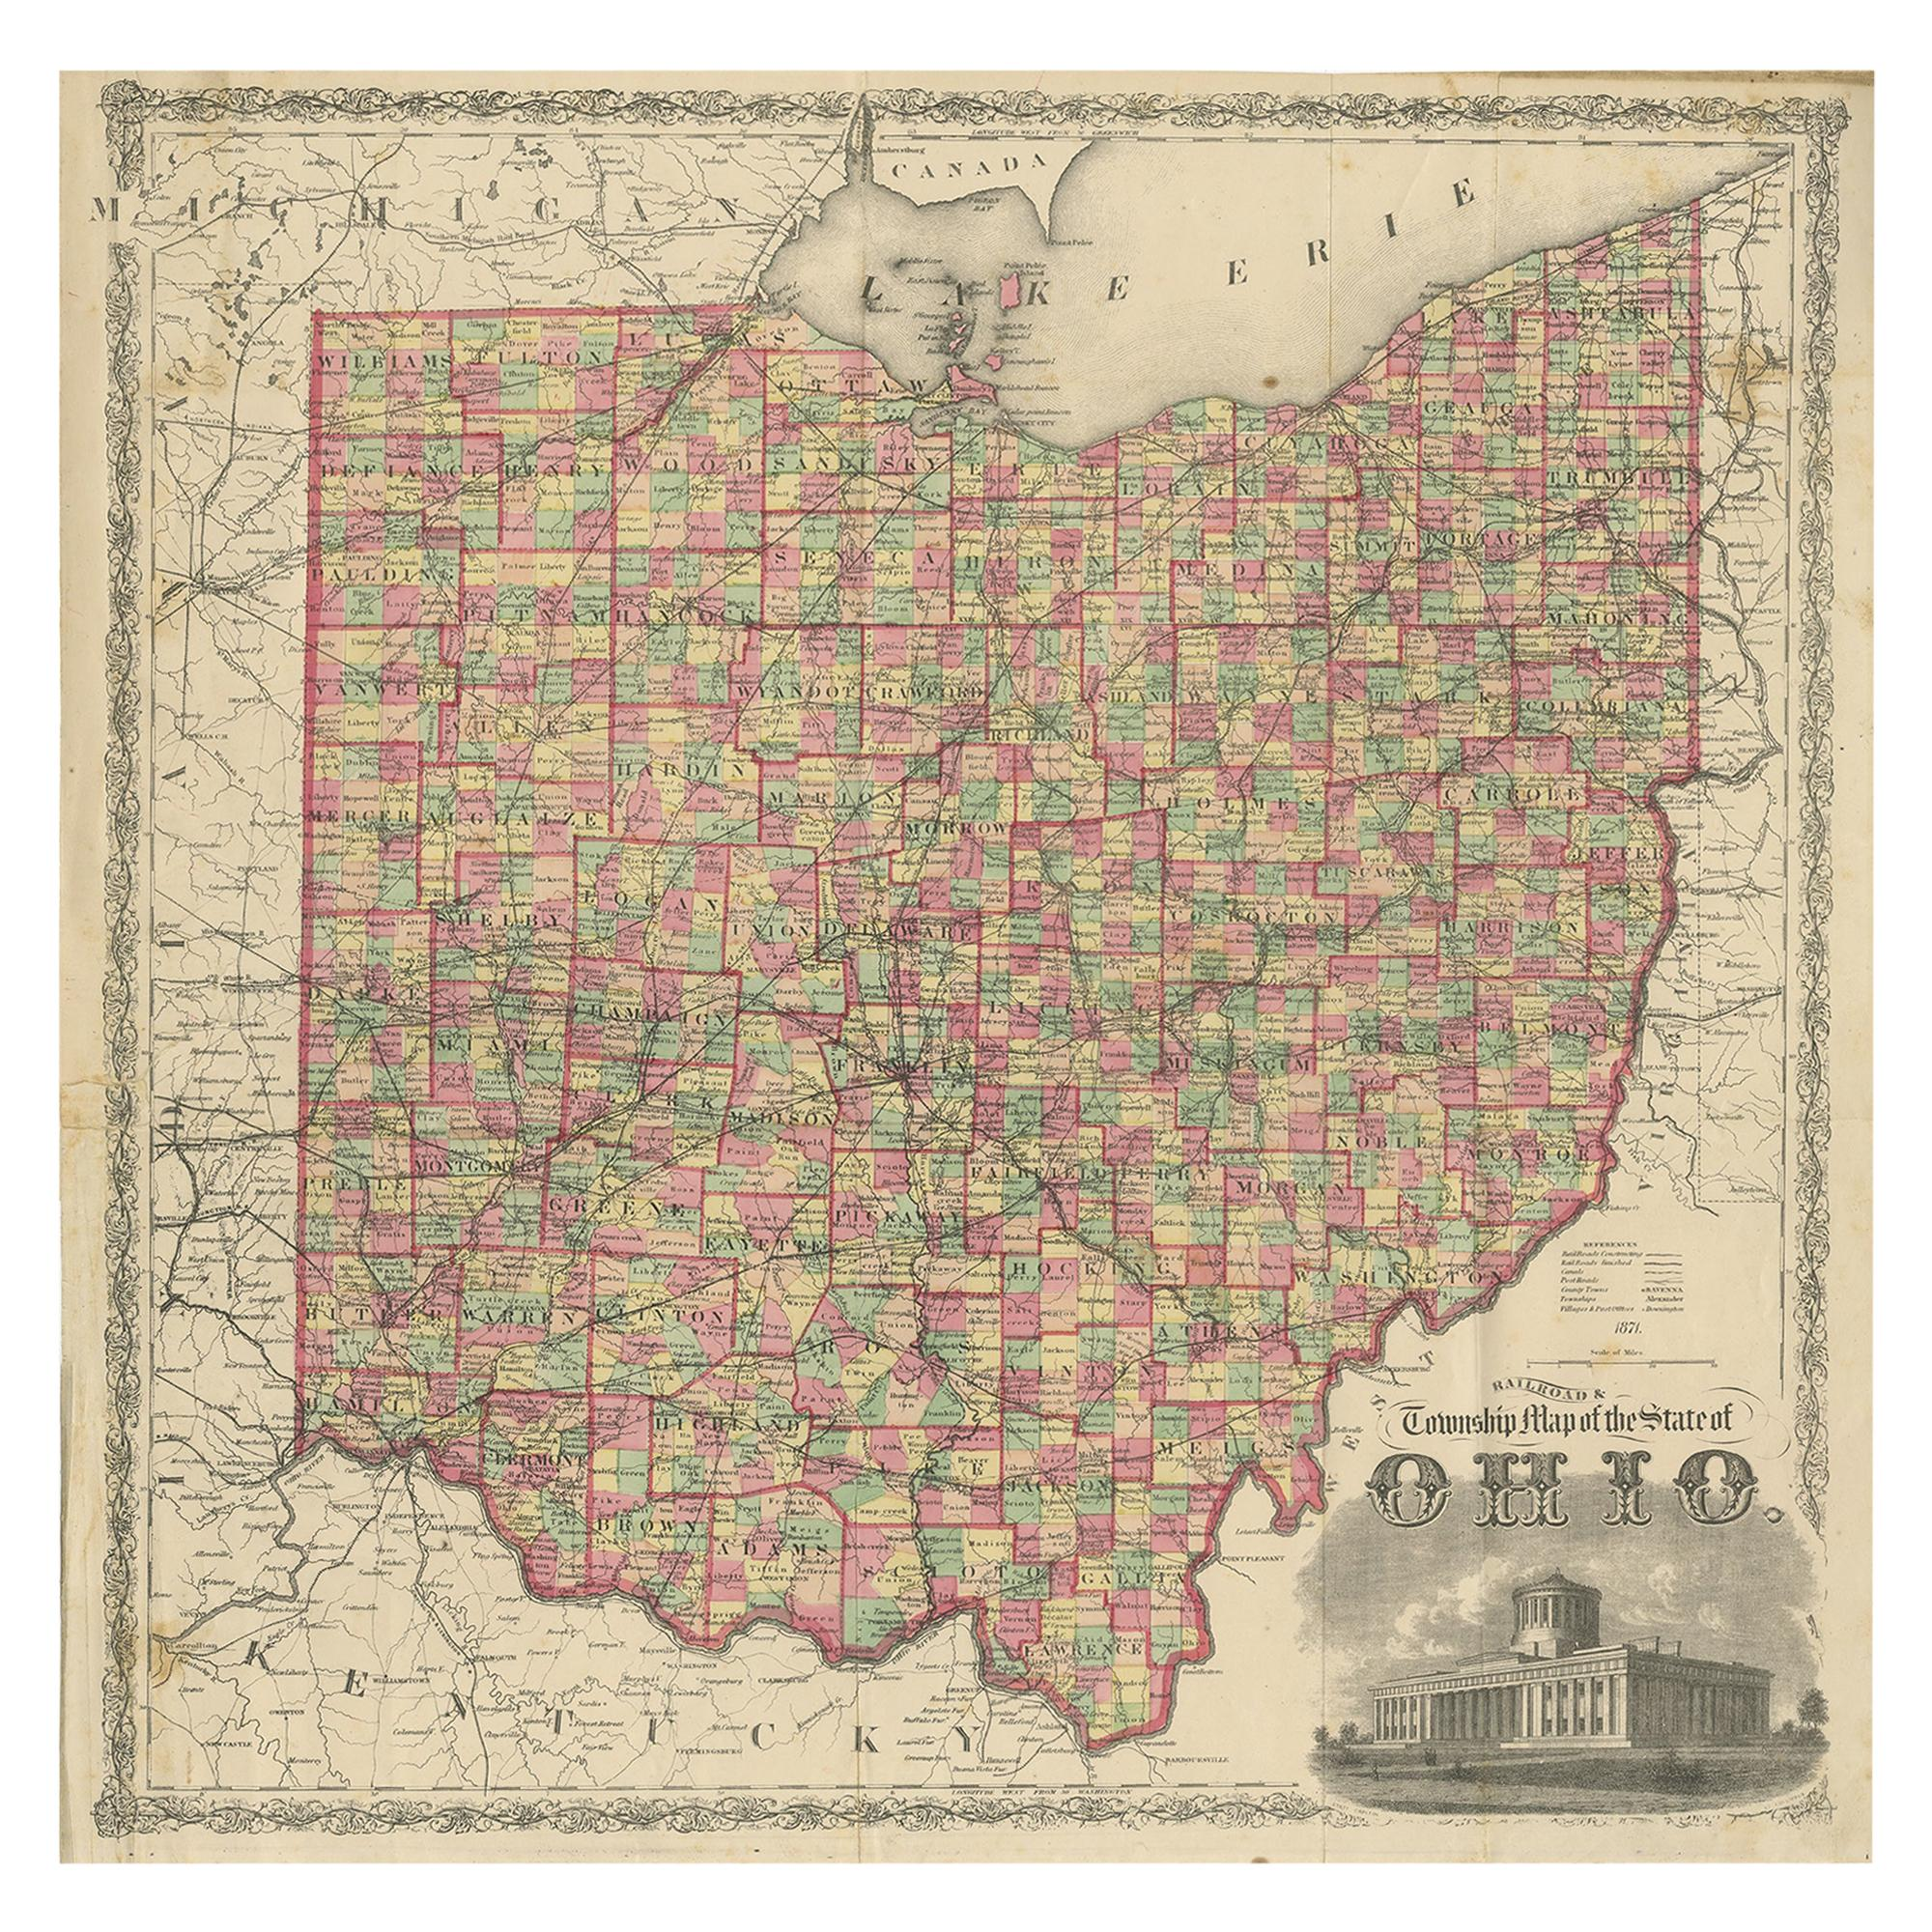 Antique Map of the State of Ohio by Titus '1871'